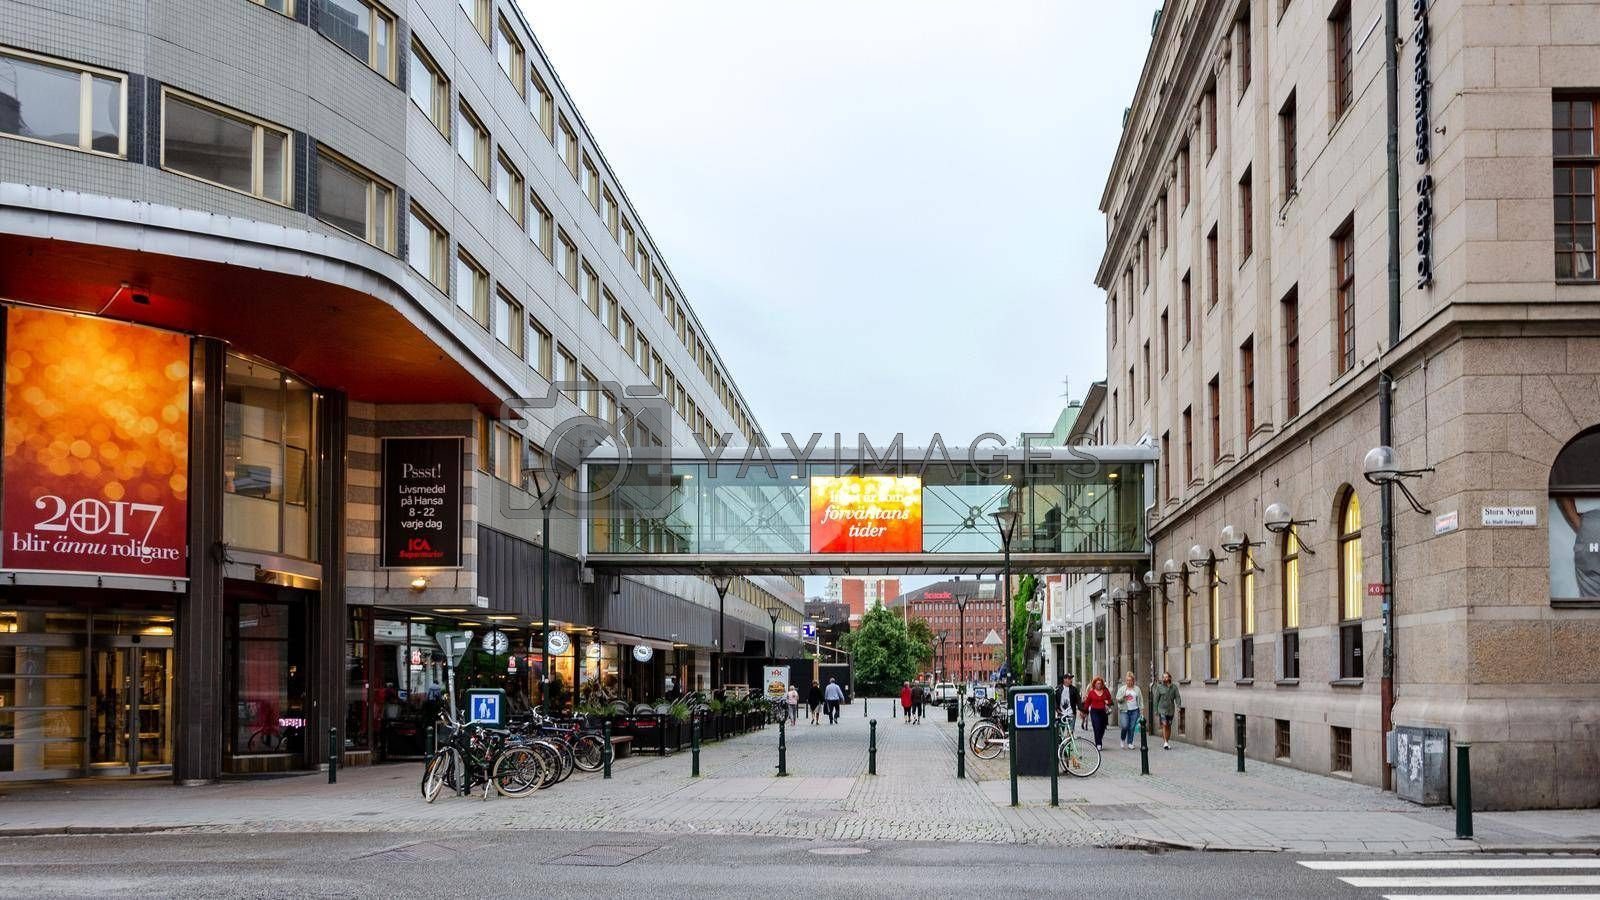 Malmo, Sweden - July 25, 2017:  Panoramic view of Stora Nygatan and Malmborgsgatan Street in the centre of Malmo in Sweden. Malmo is the largest city of Skane County and the third largest city in Sweden after Stockholm and Gothenburg.